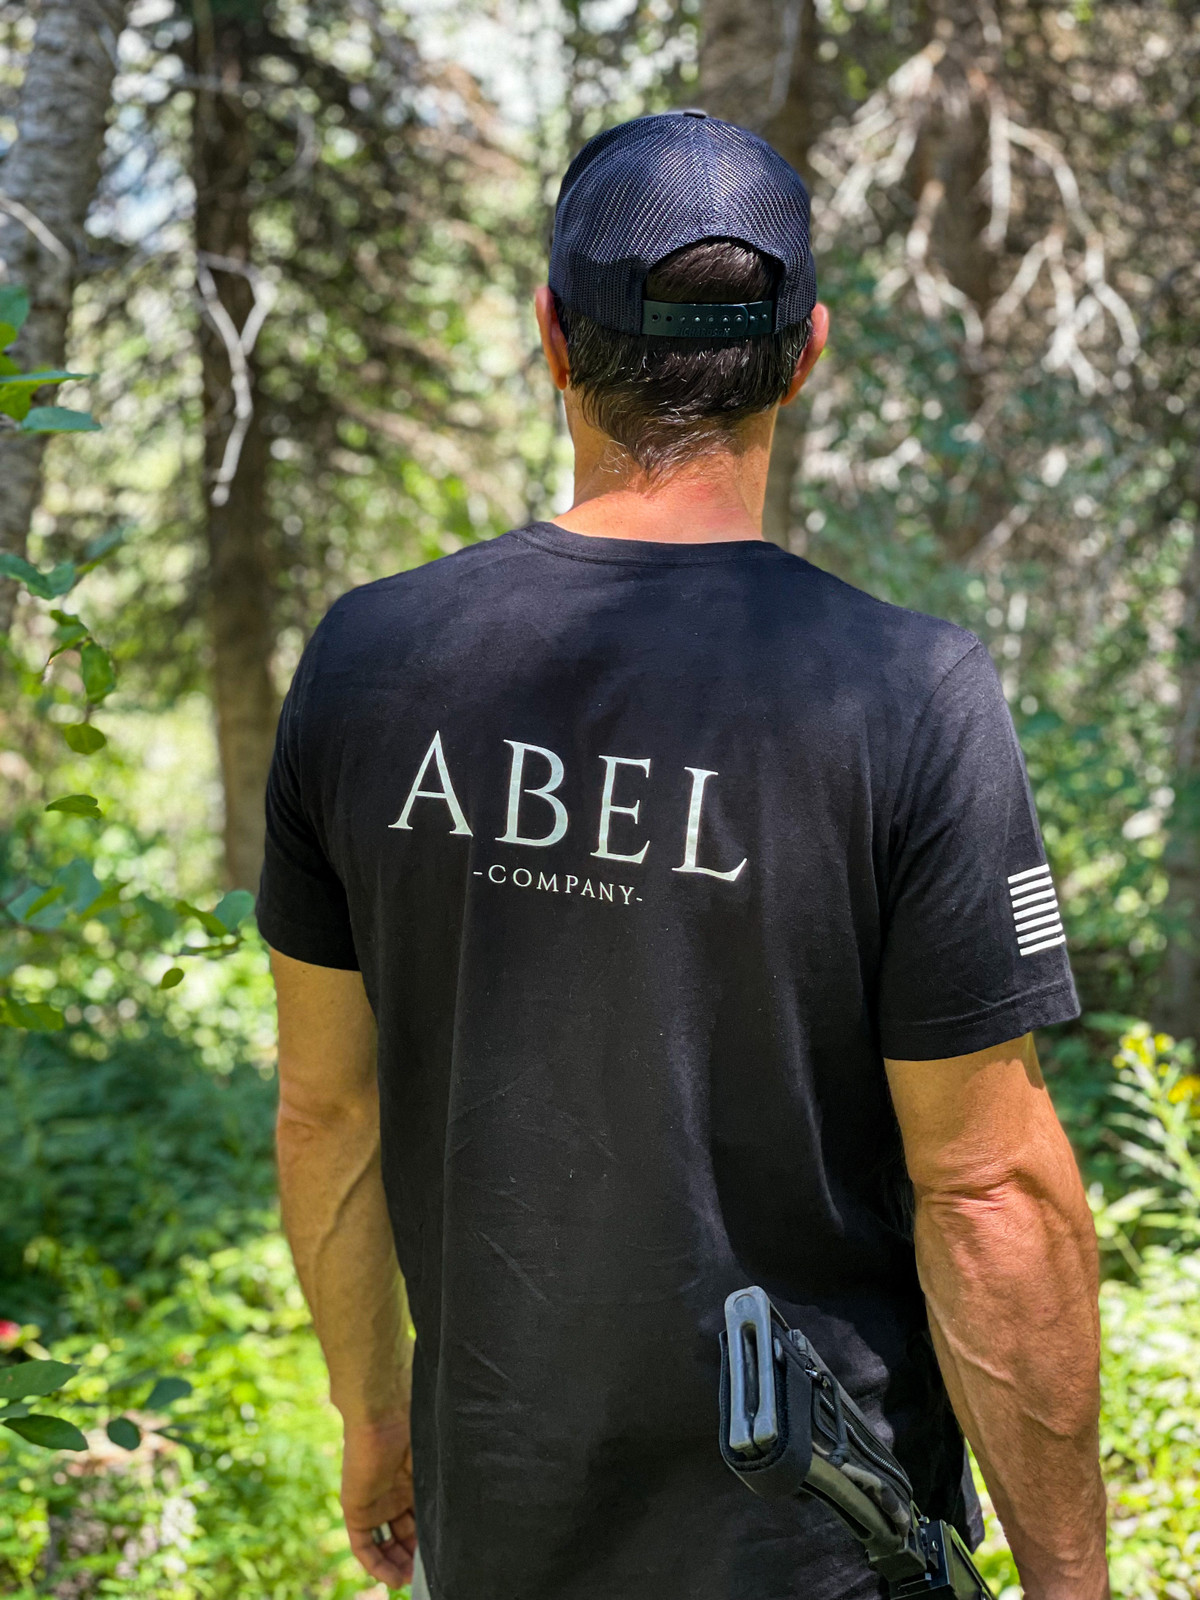 Picture of the Abel Company branded shirt being worn in the forest on a man with a SnapBack hat - the back of the shirt is in view.